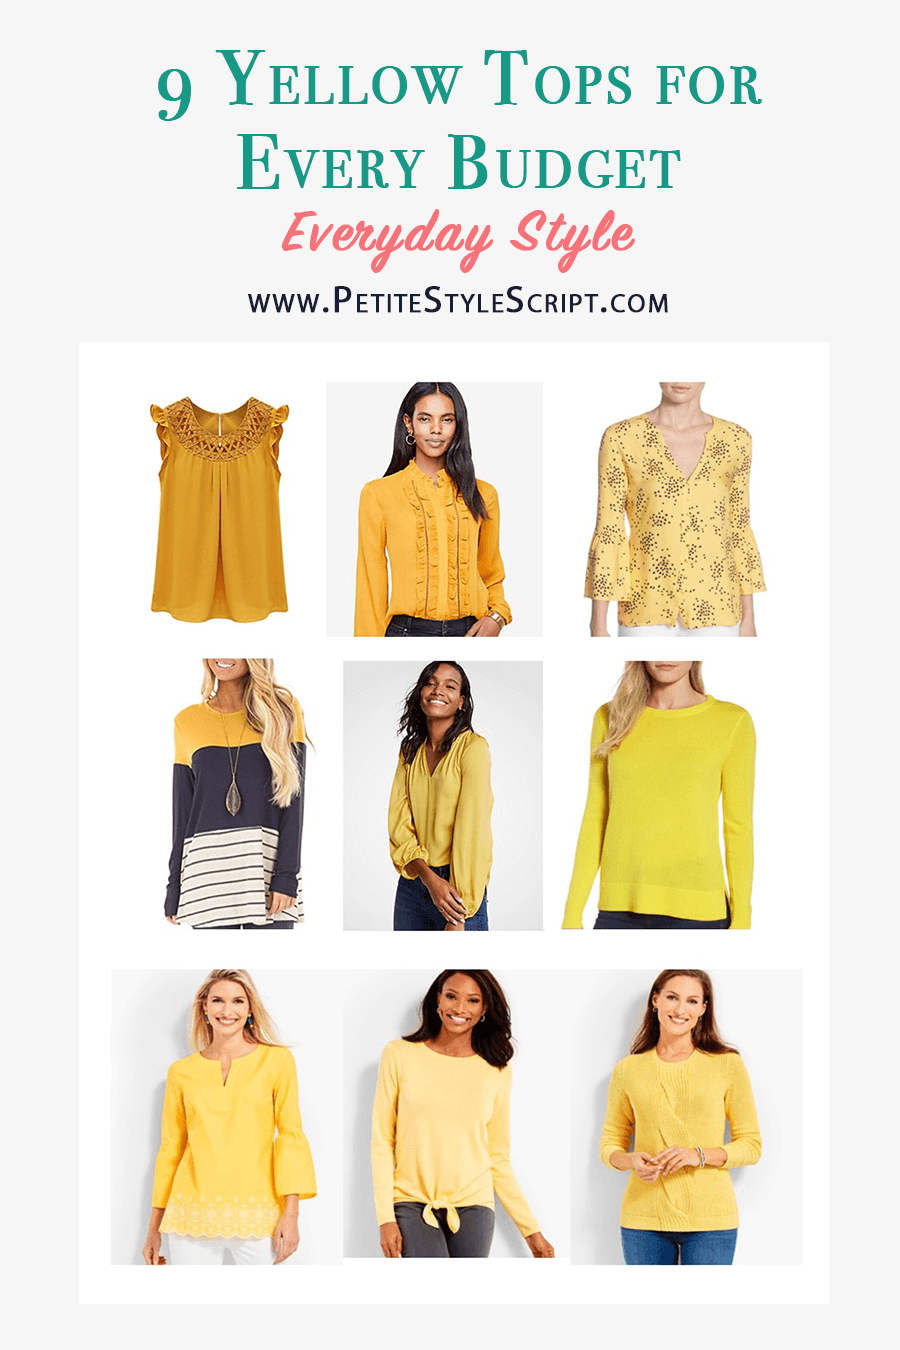 093f3d36cf7 How to Wear Navy   Mustard Yellow Together + 9 Affordable Tops ...